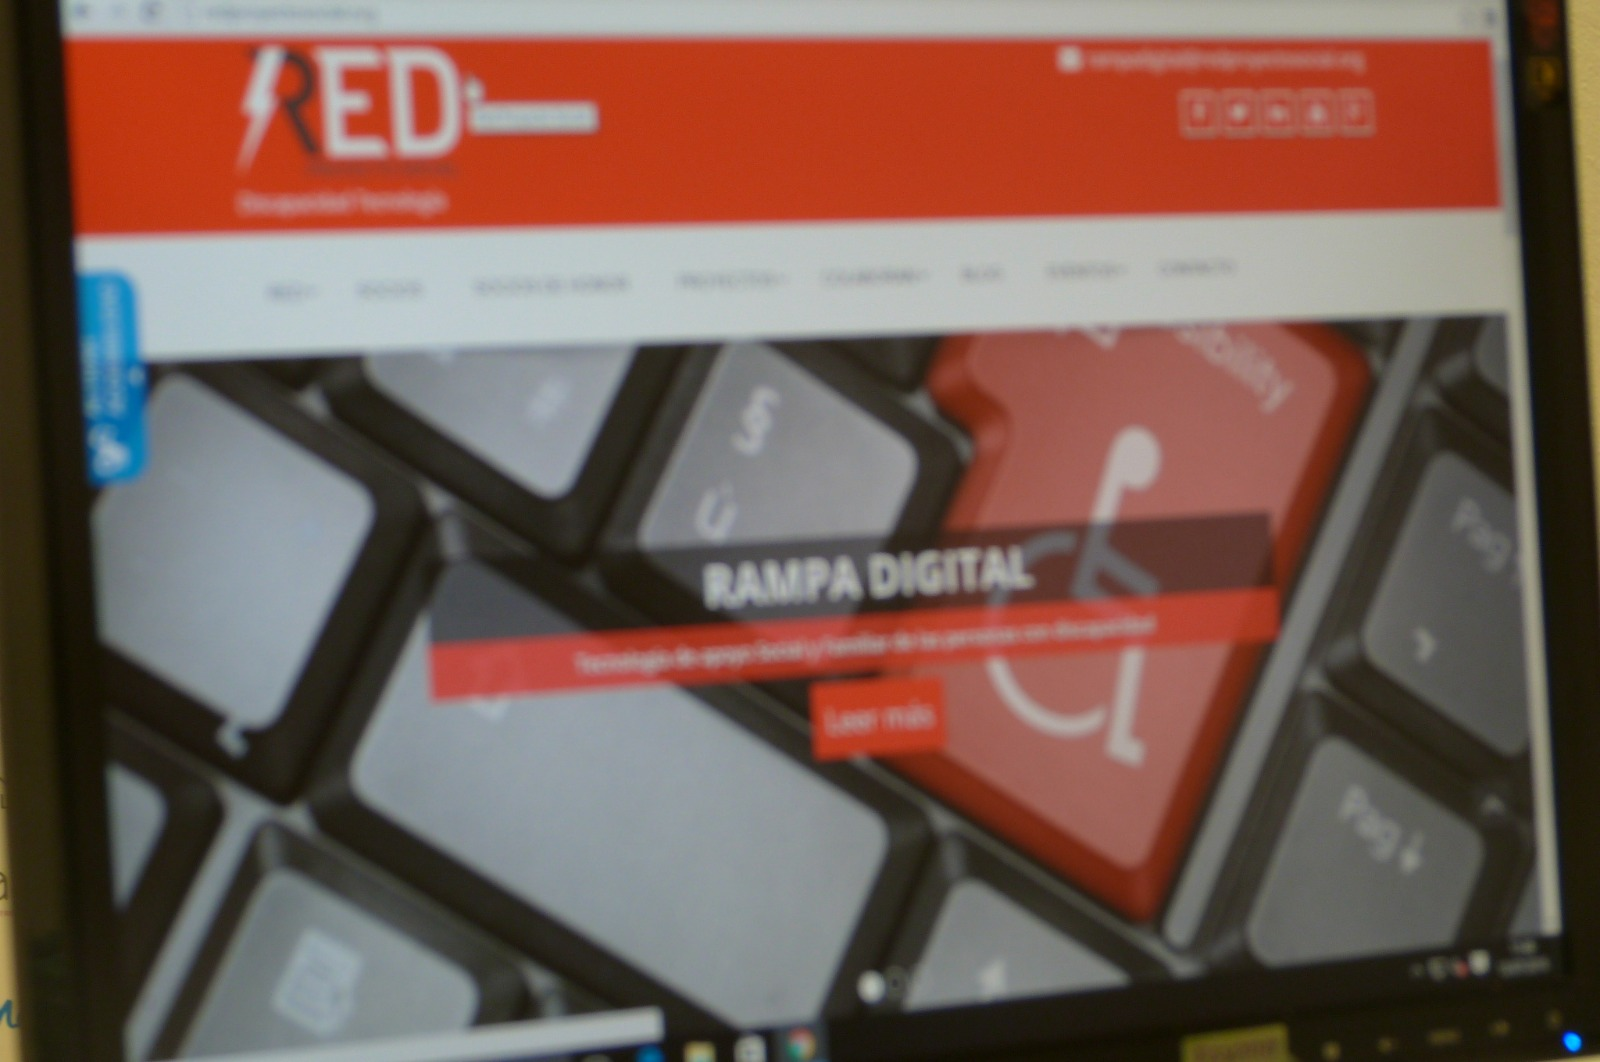 Web RED PROYECTO SOCIAL accesible con programa #inSuit